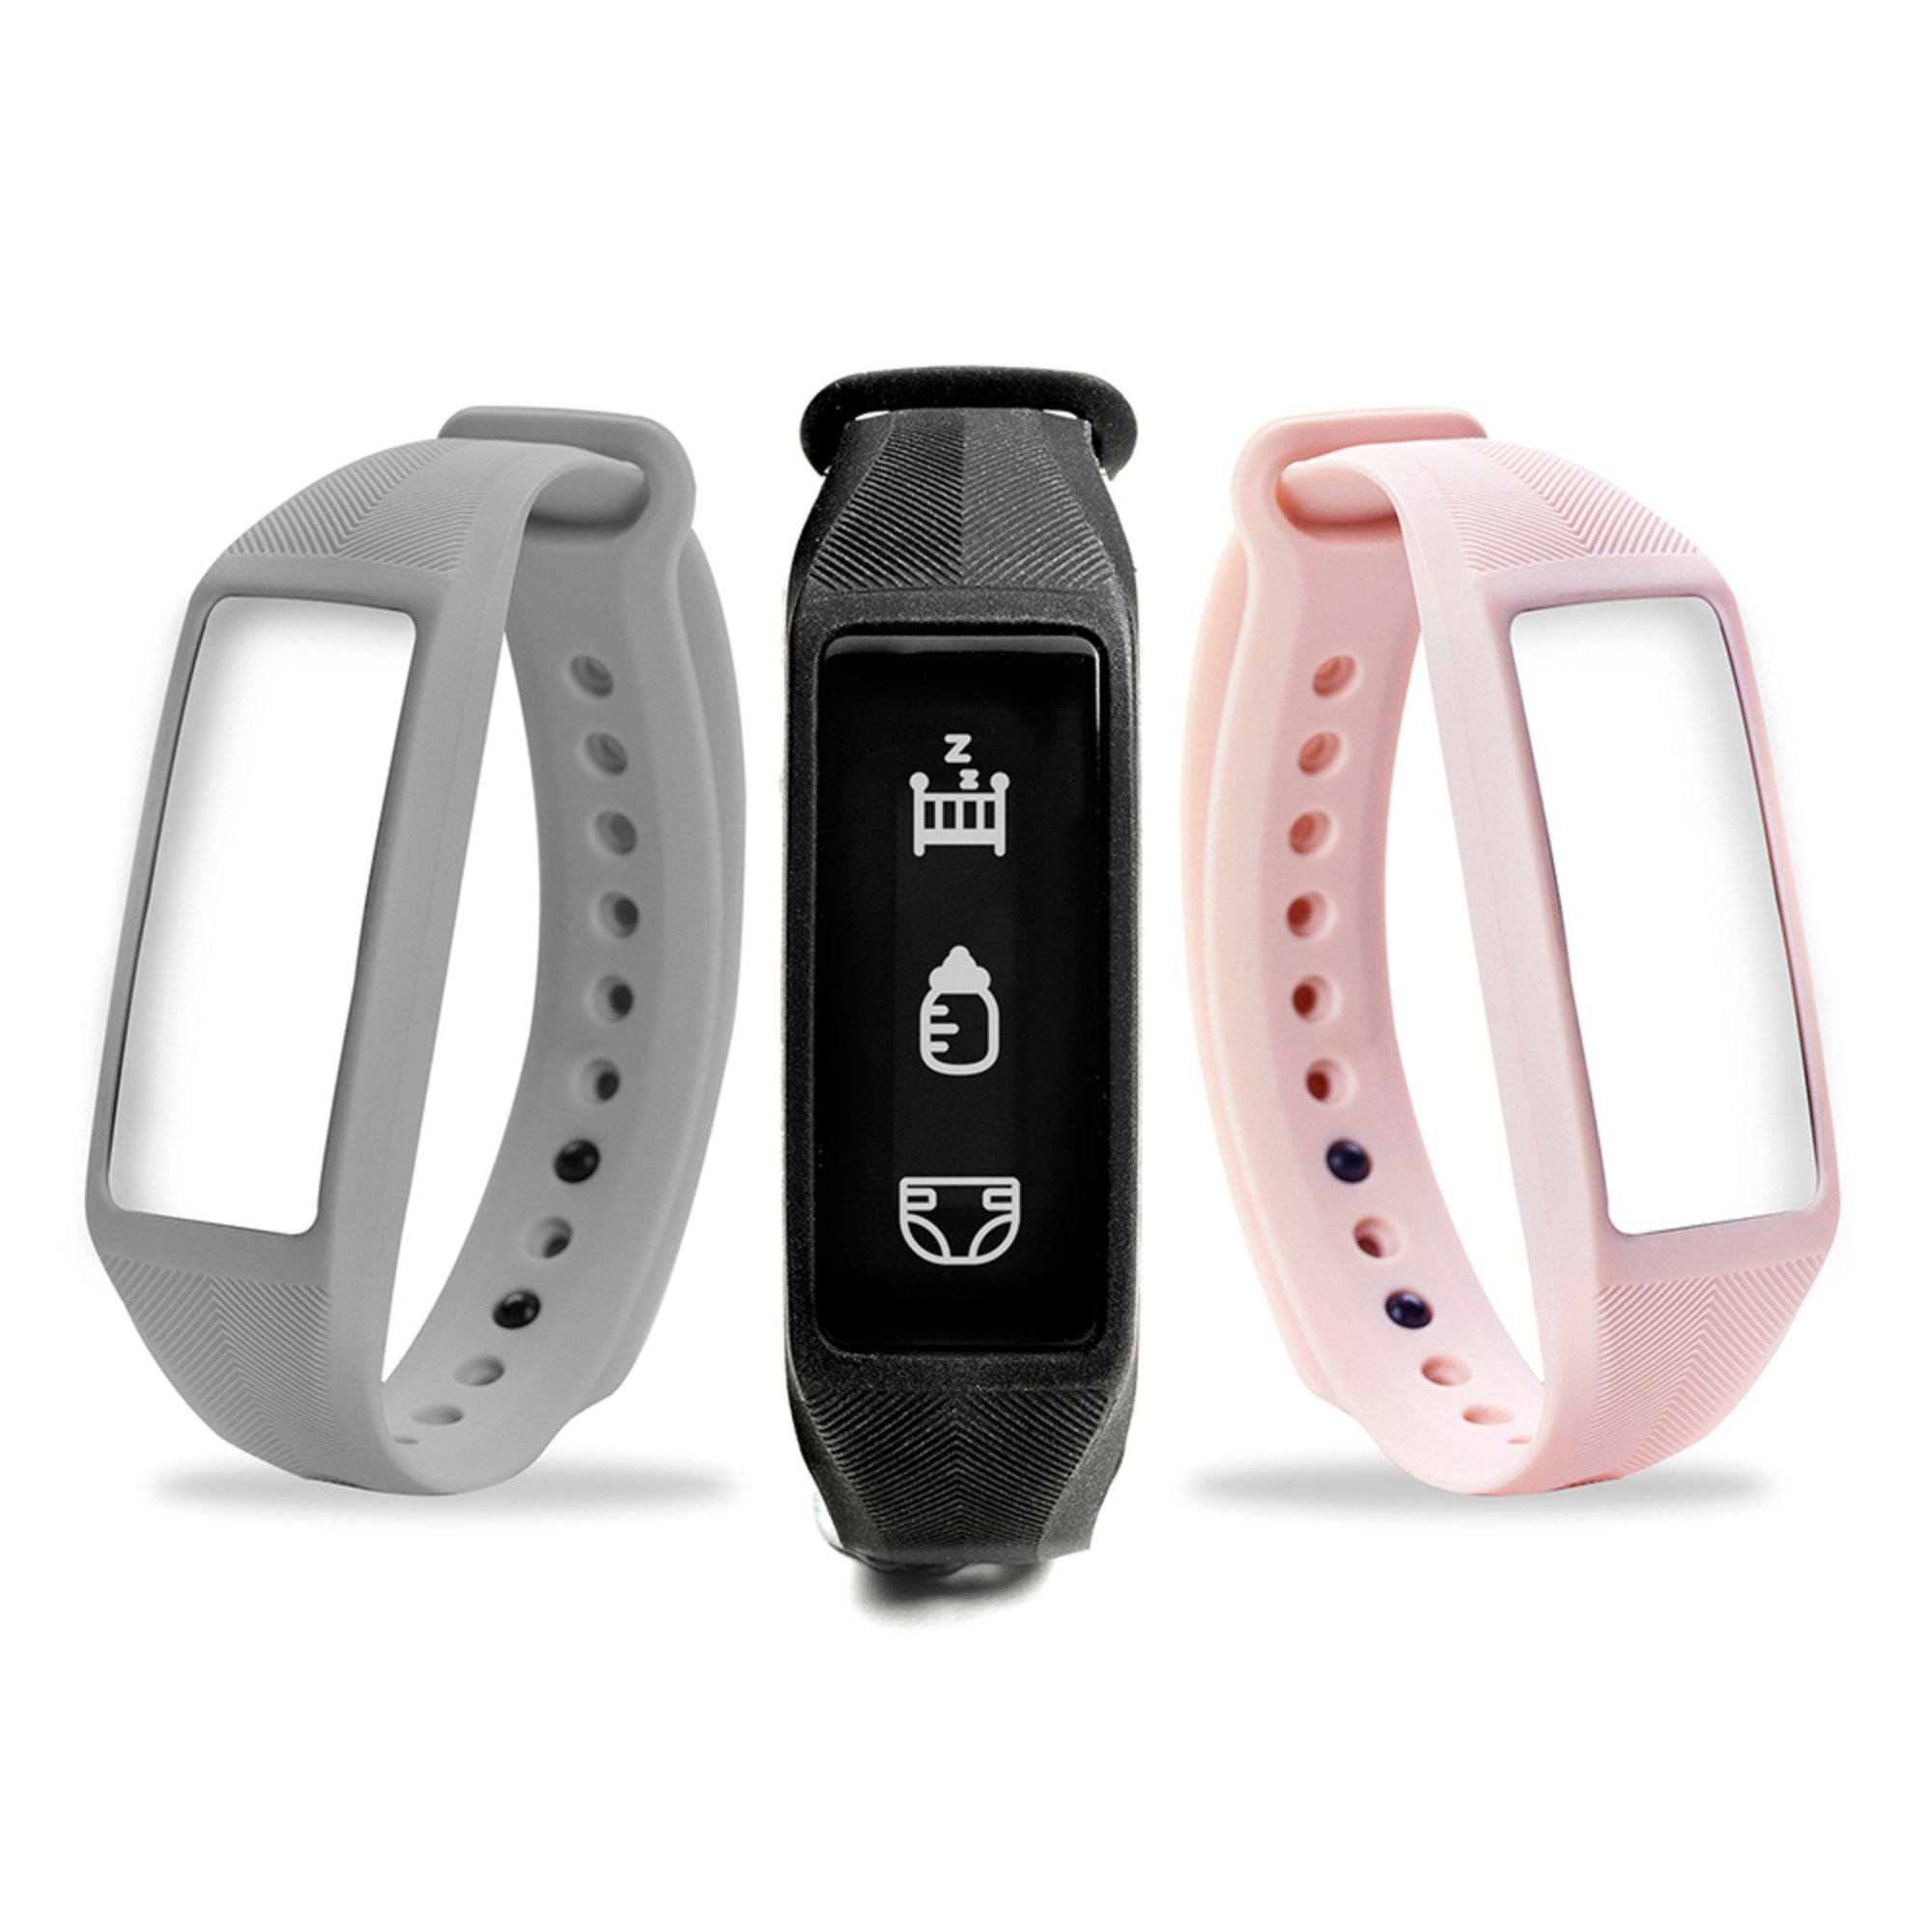 project nursery parent baby smartband w extra bands wearable baby monitors baby kids. Black Bedroom Furniture Sets. Home Design Ideas